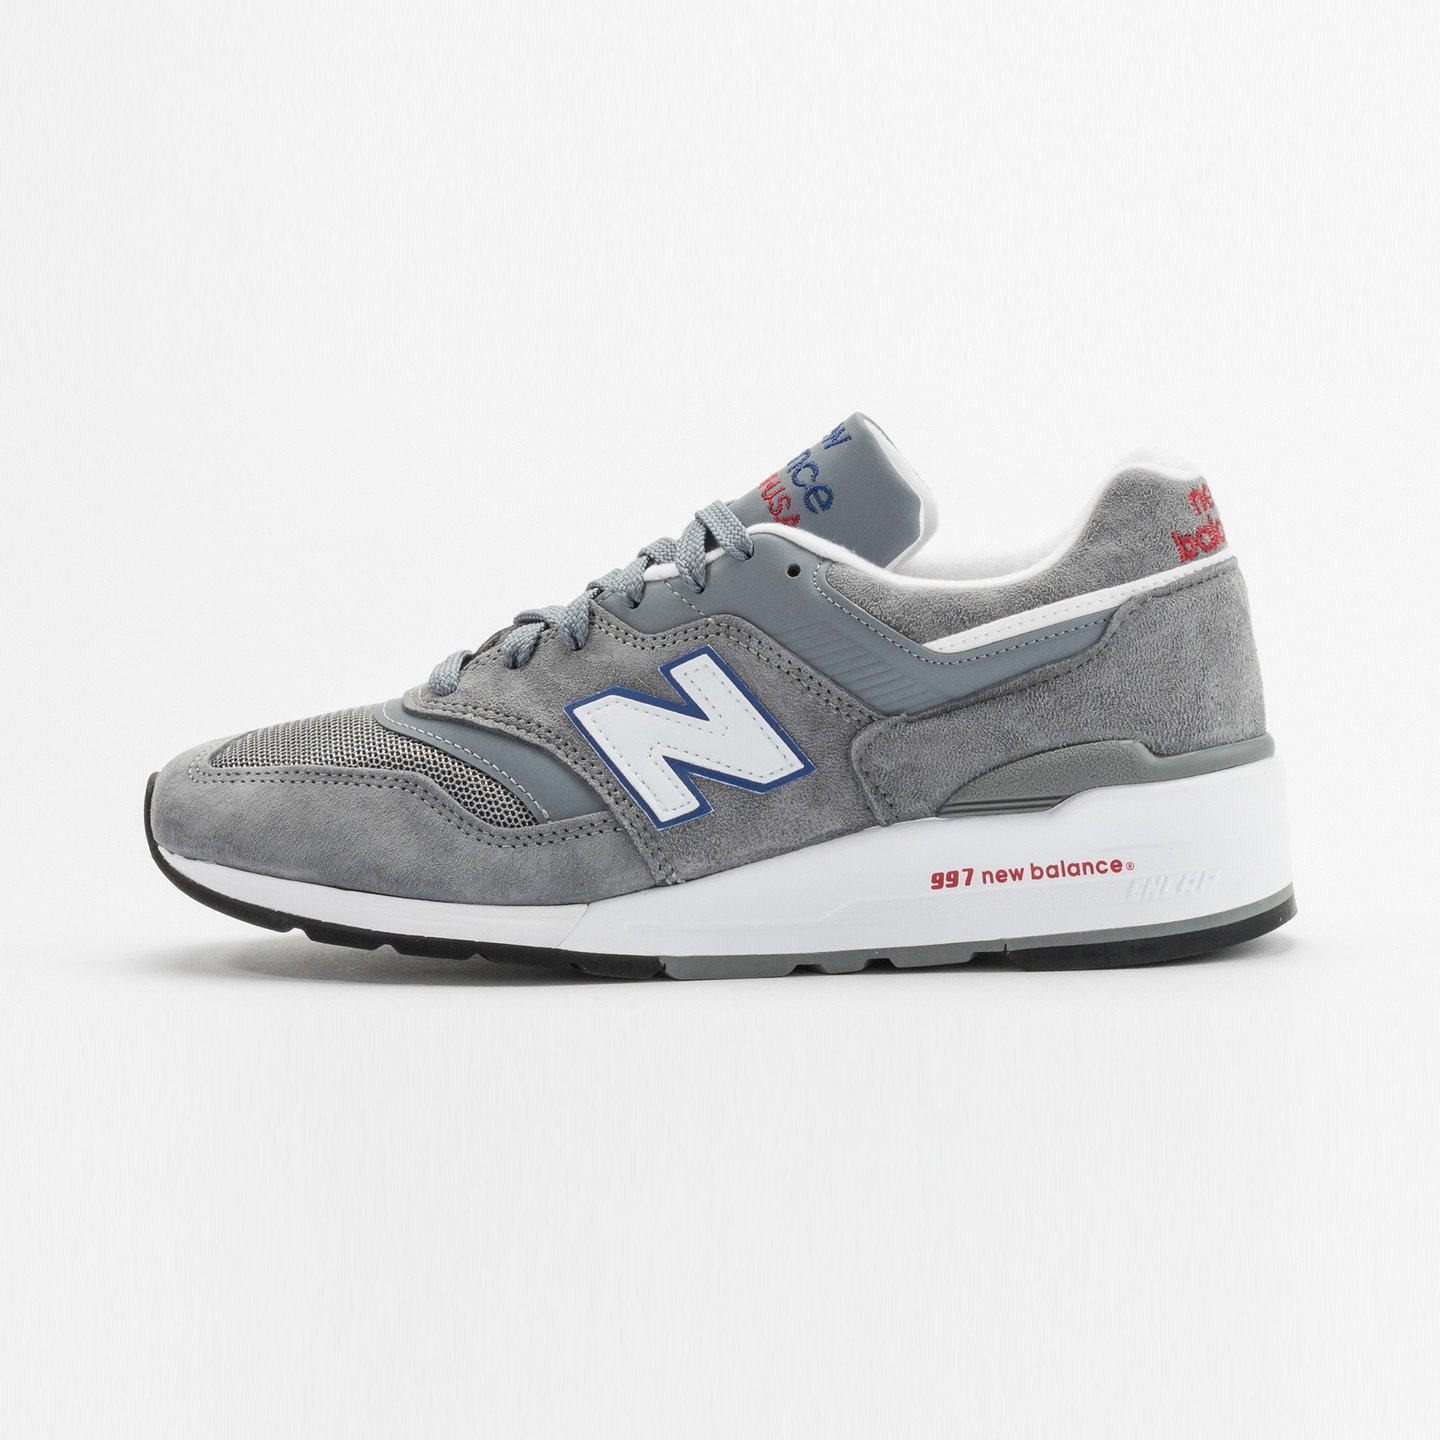 New Balance M997 Made in USA Grey / Blue / Red M997CNR